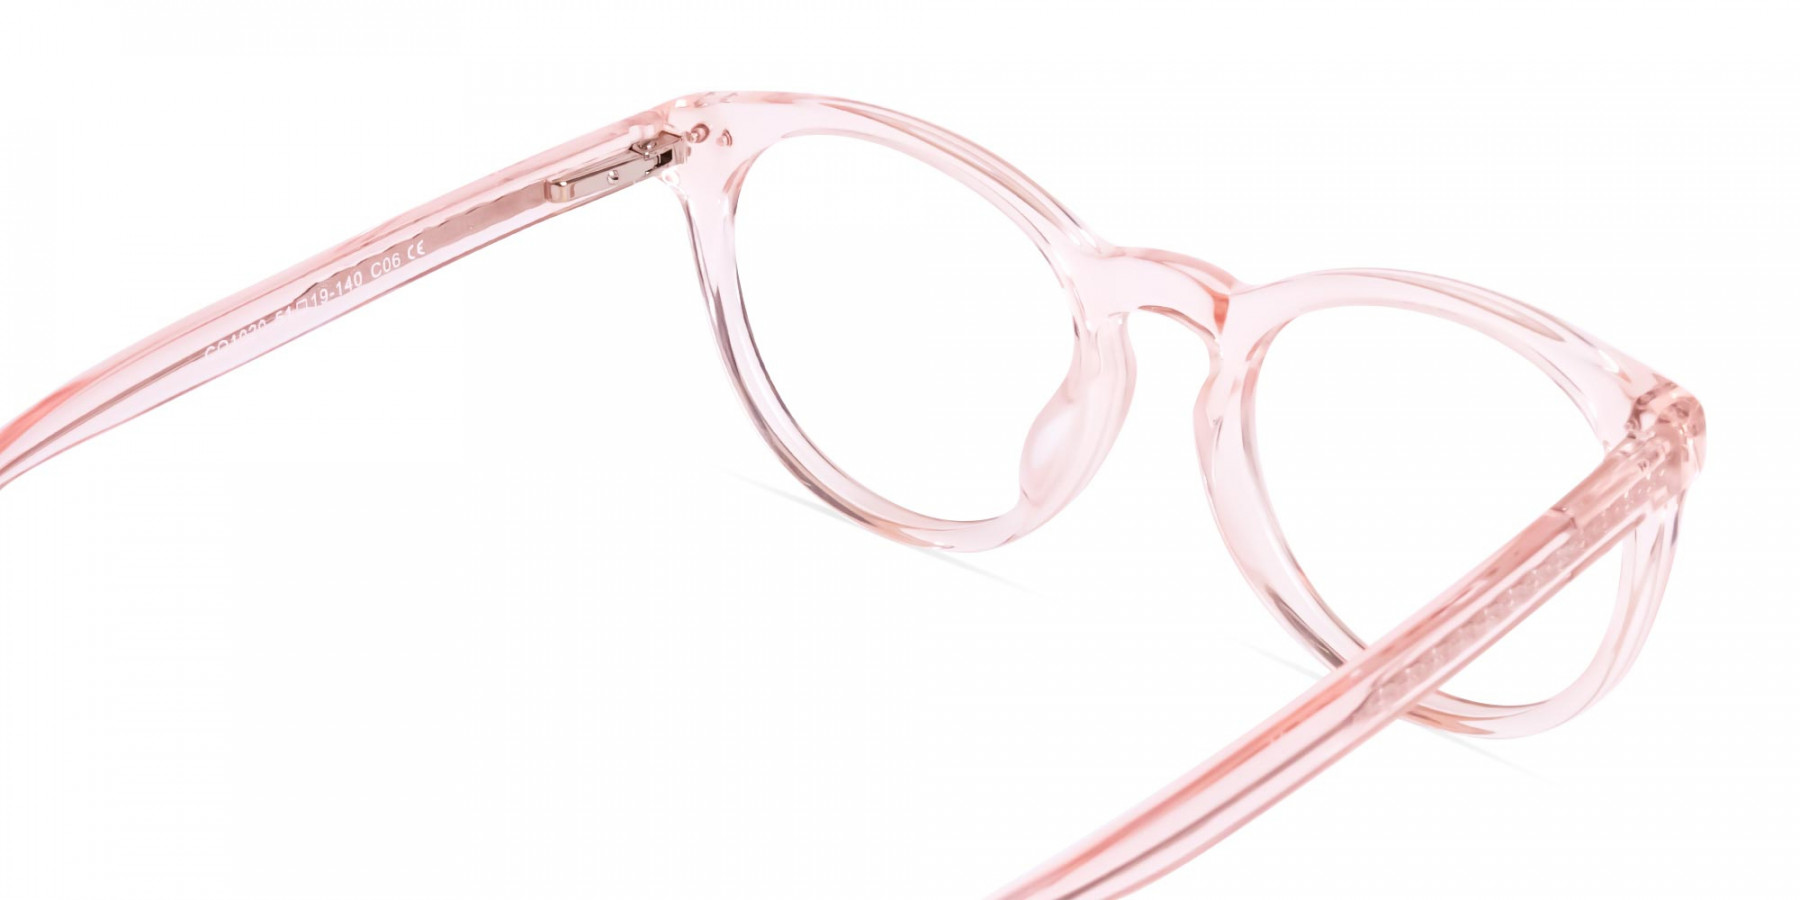 crytal-clear-or-transparent-nude-and-hot-pink-full-rim-glasses-frames-1